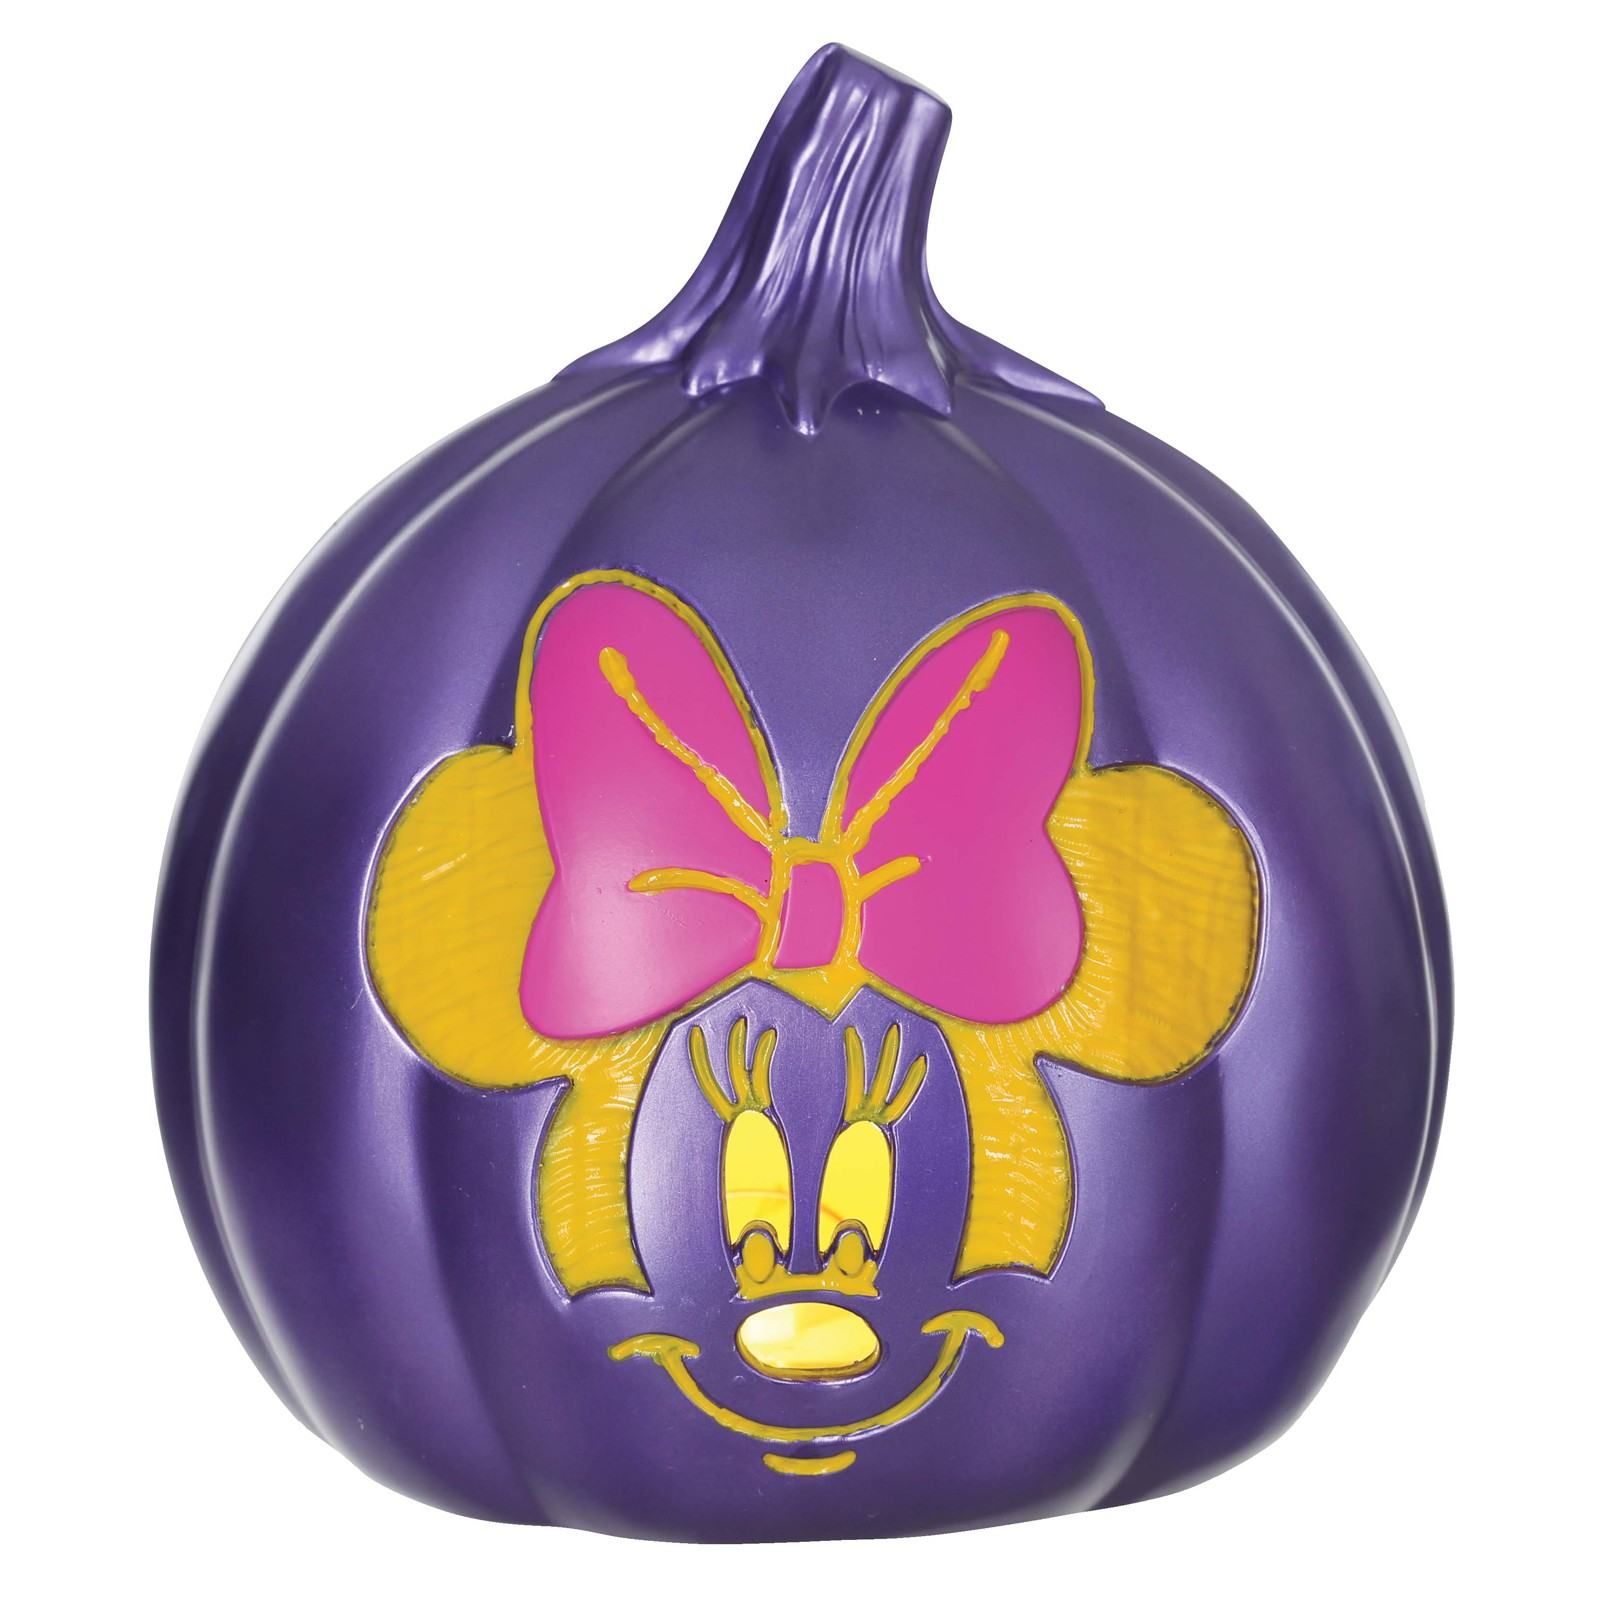 "Minnie Mouse 6"" Light-Up Pumpkin"